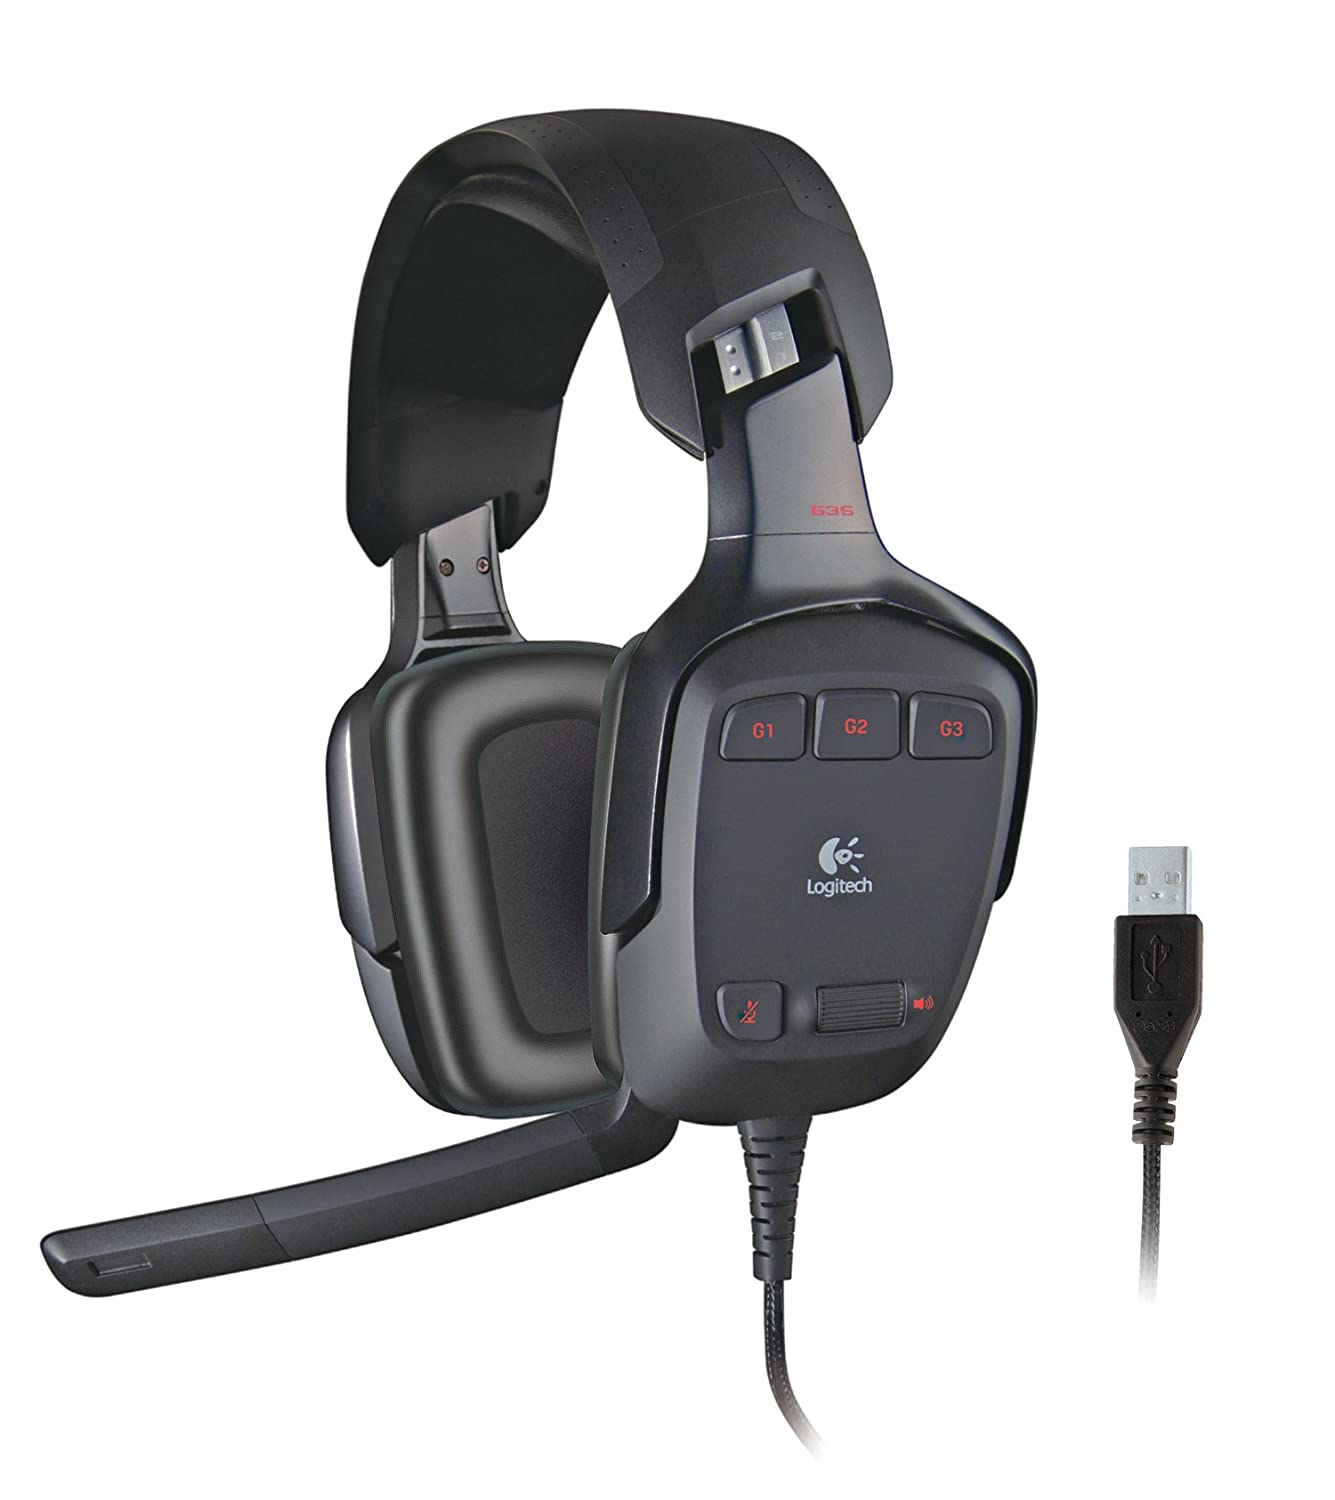 G35 HEADSET WINDOWS 10 DRIVERS